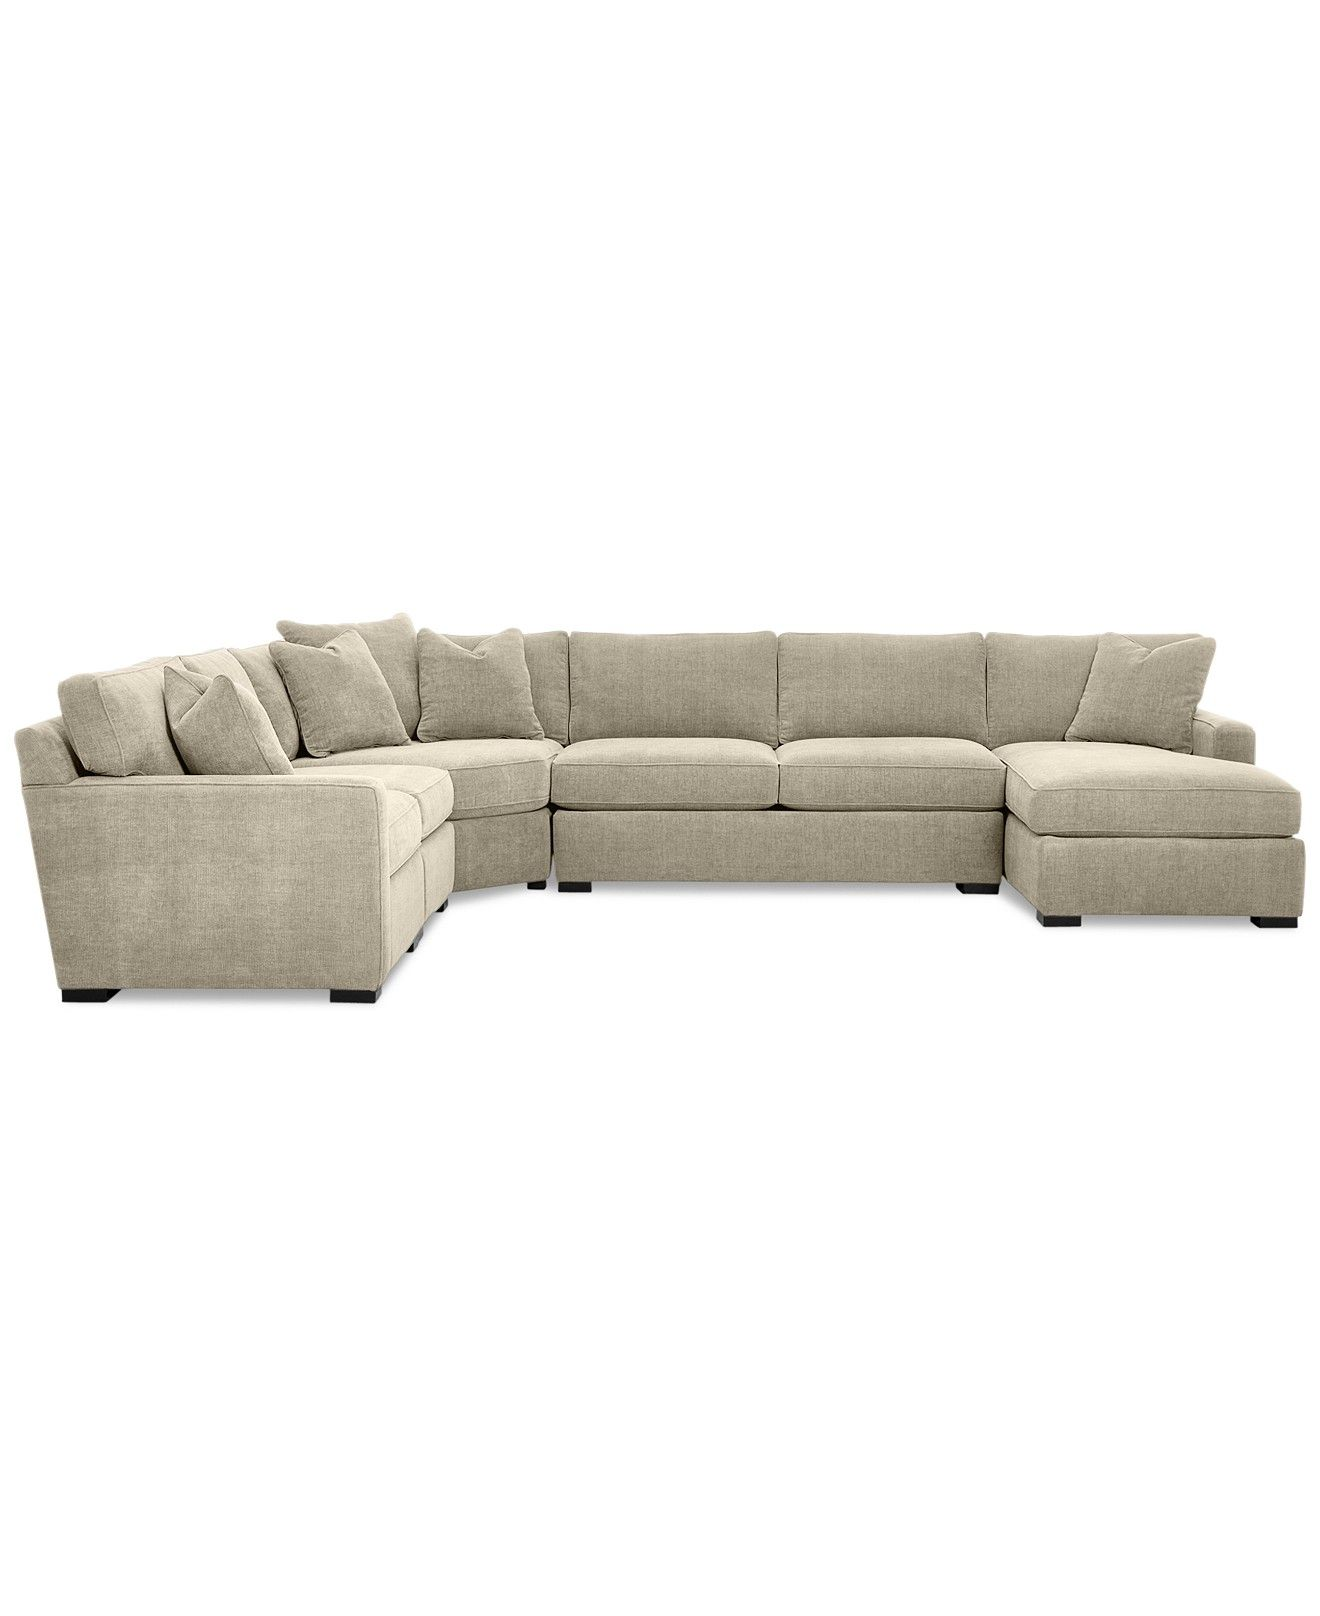 Best Radley 5 Piece Fabric Chaise Sectional Sofa Created For 640 x 480